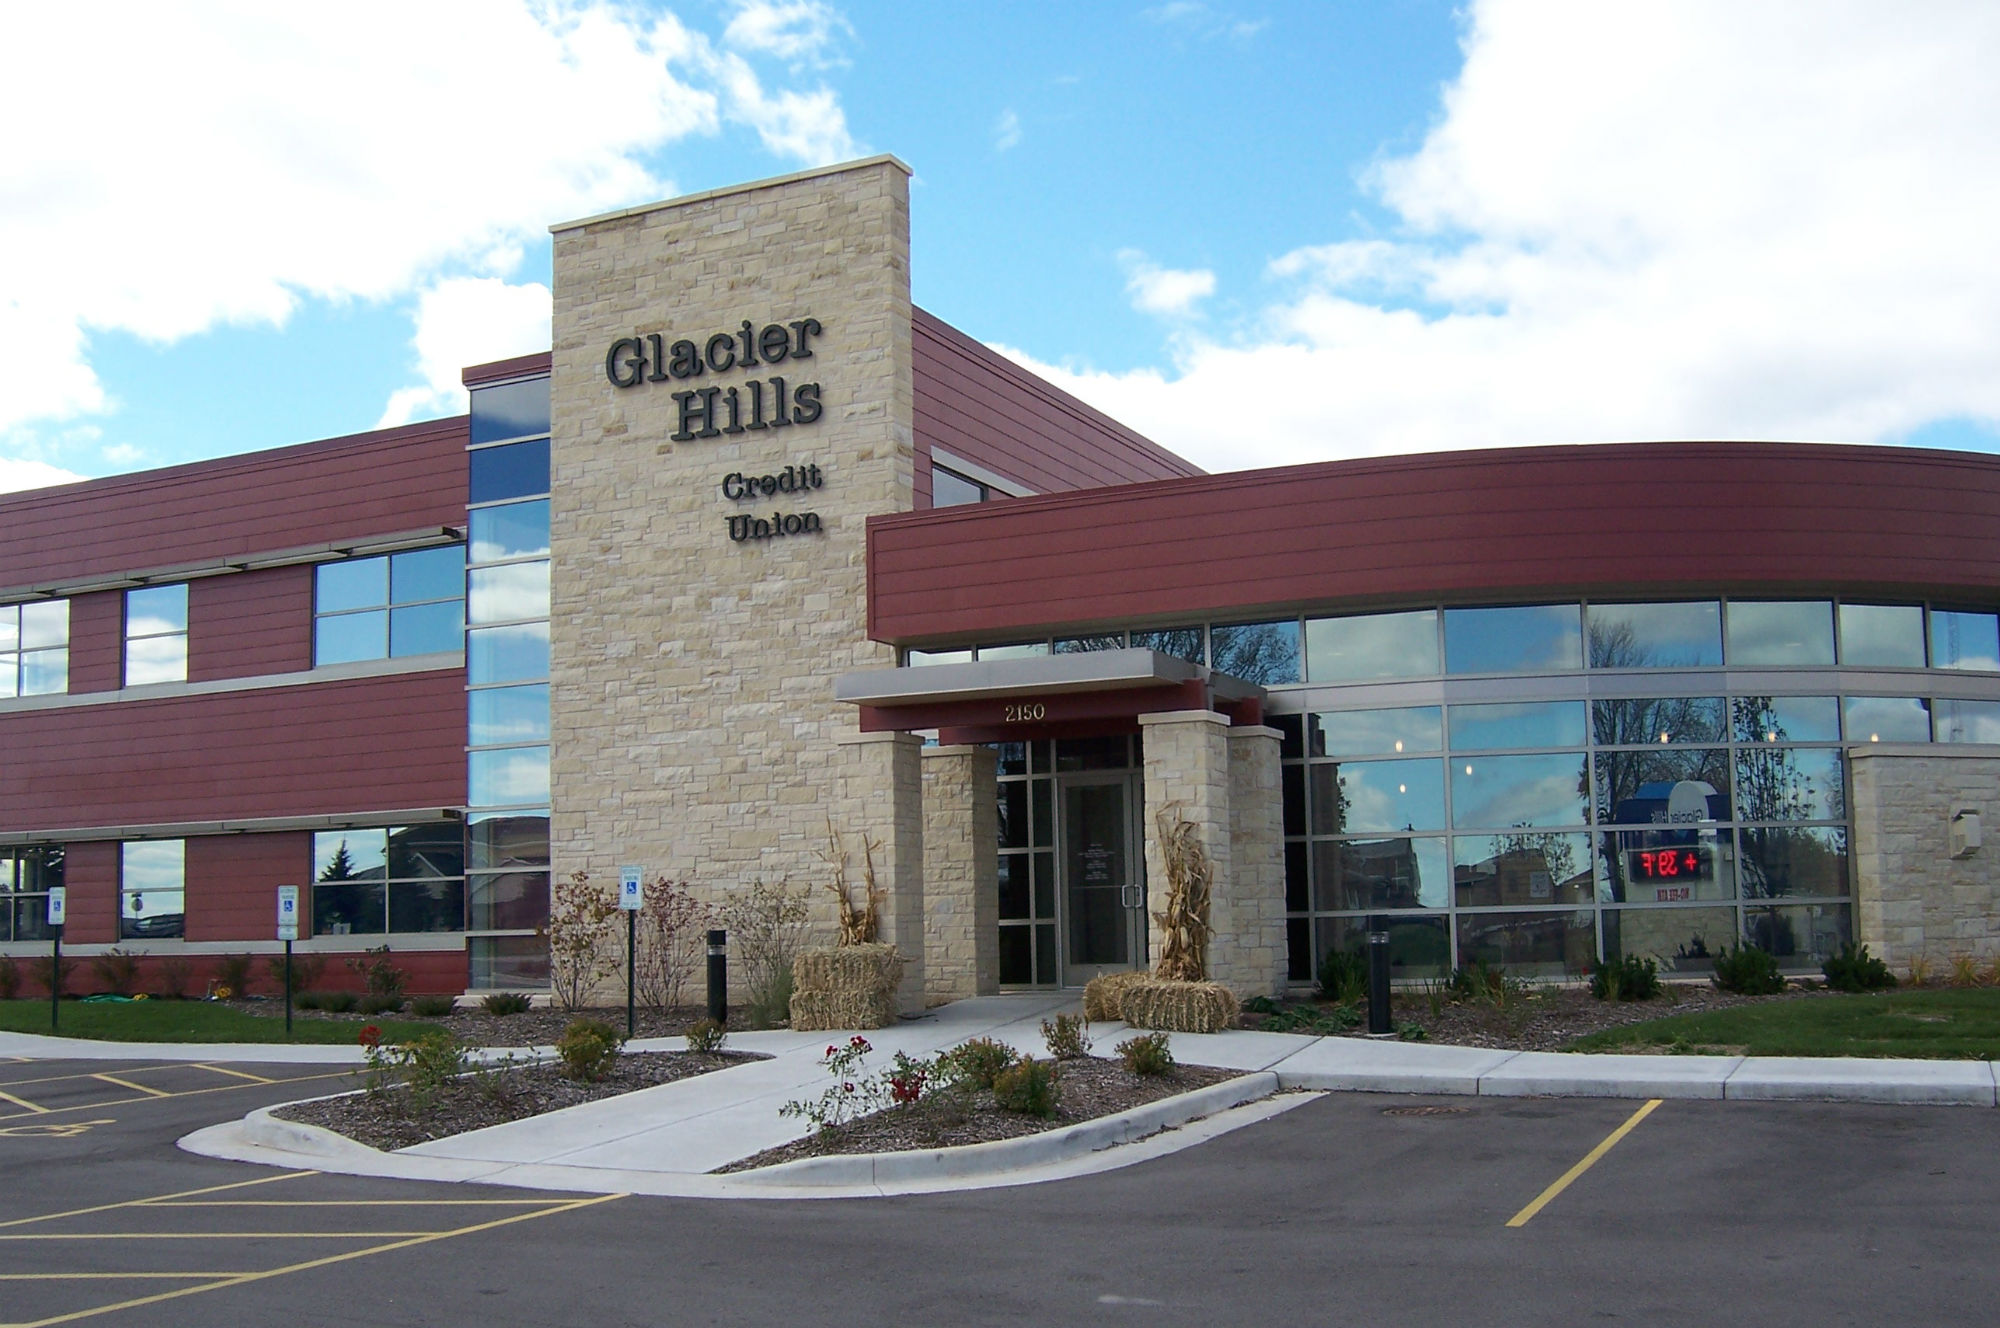 Glacier Hills Credit Union (Financial)